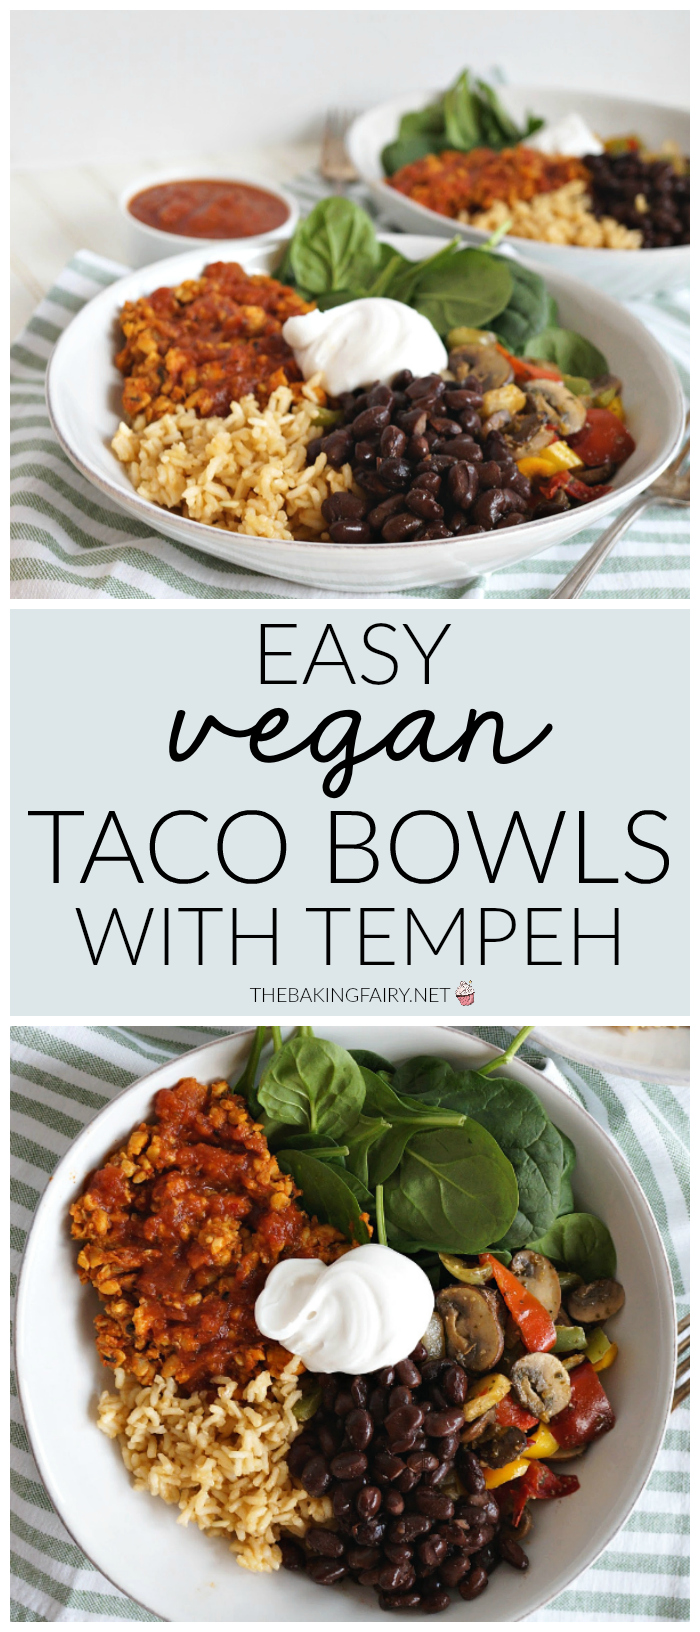 easy vegan taco bowls with tempeh | The Baking Fairy